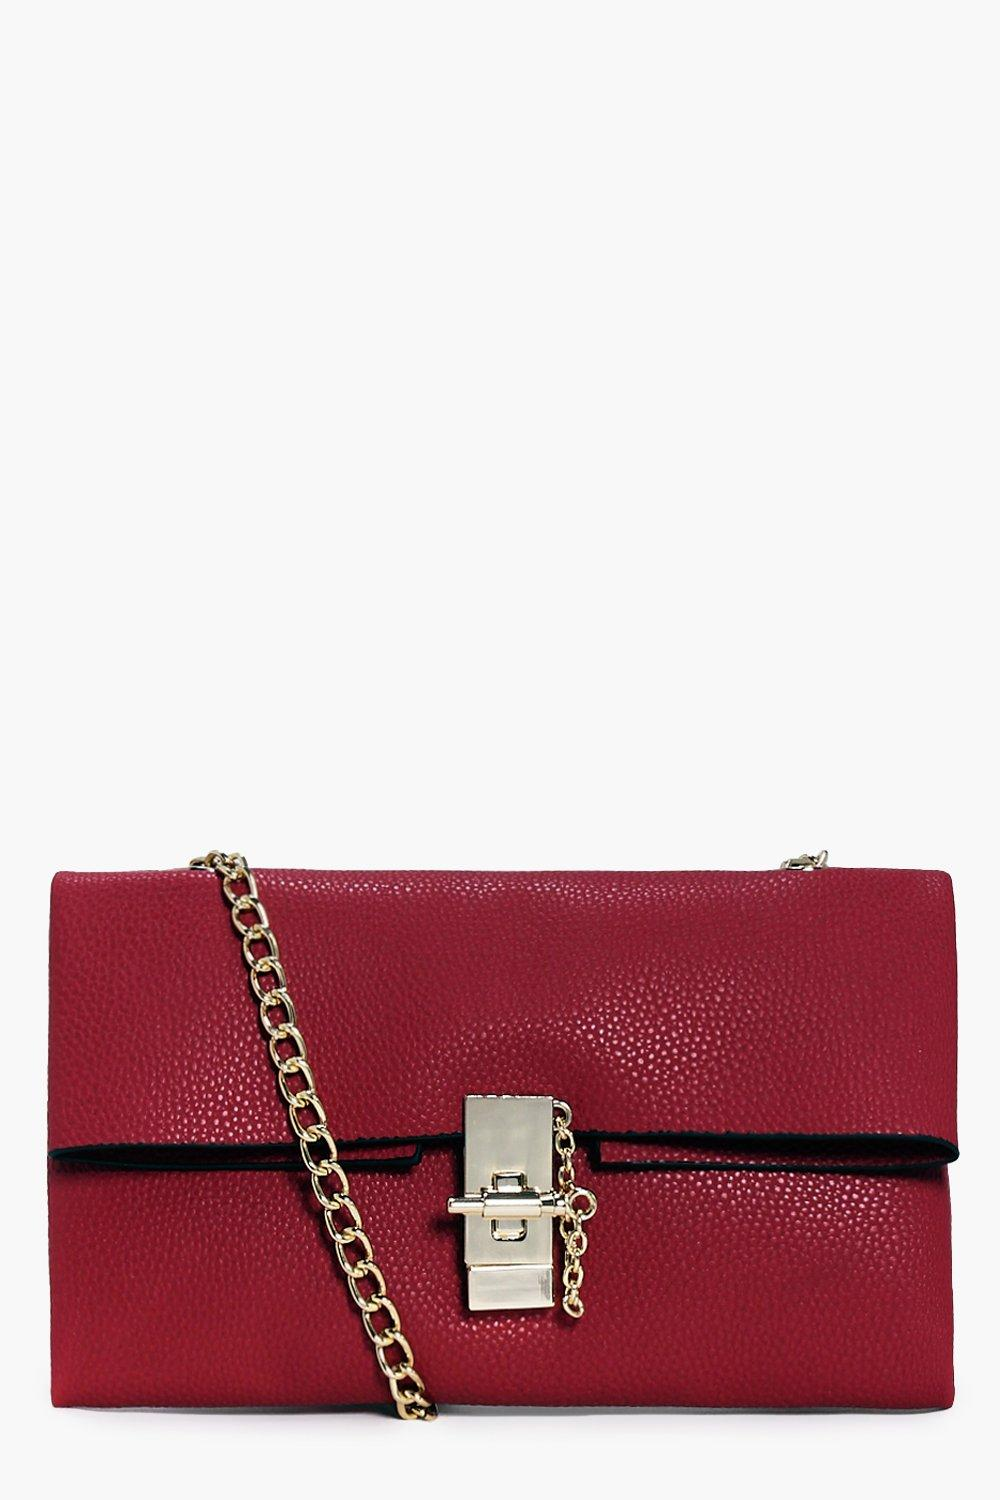 Eva Turn Lock Chain Strap Clutch Bag